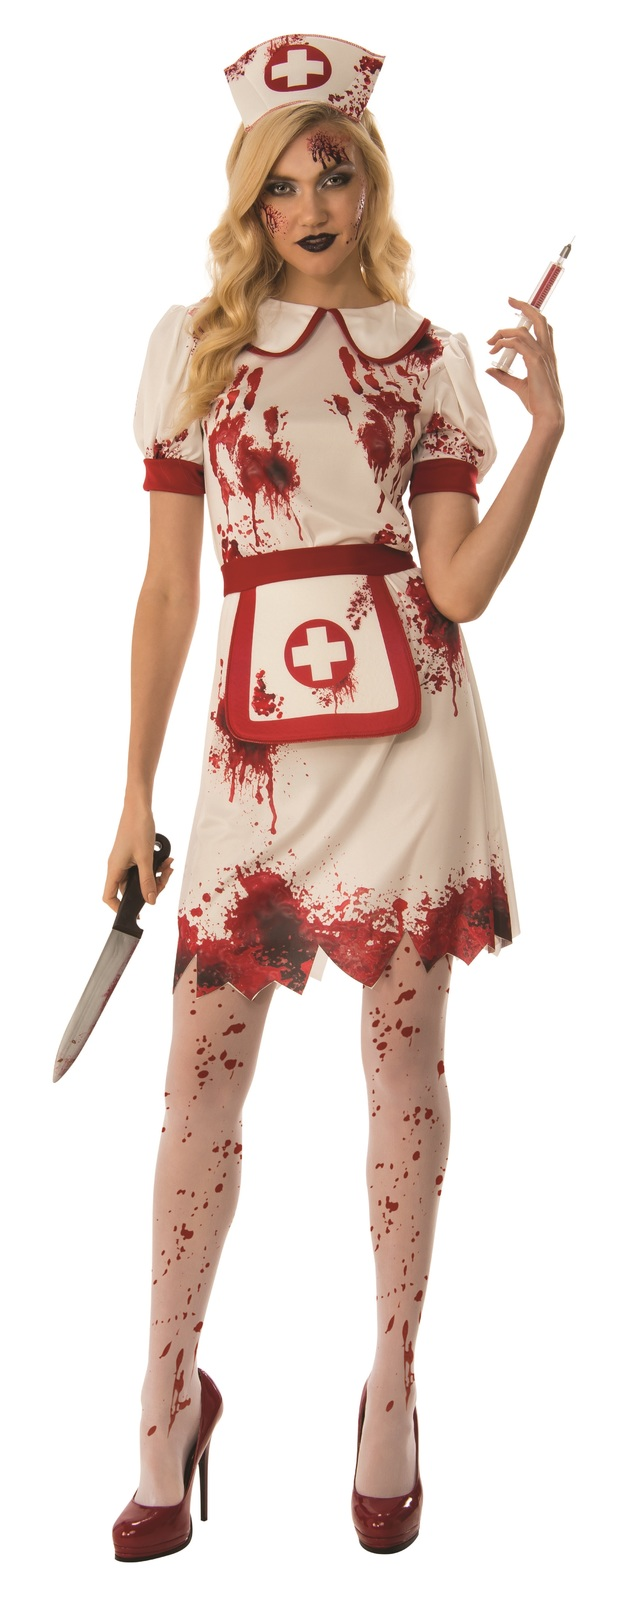 Rubie's: Bloody Nurse - Women's Costume (Small) image